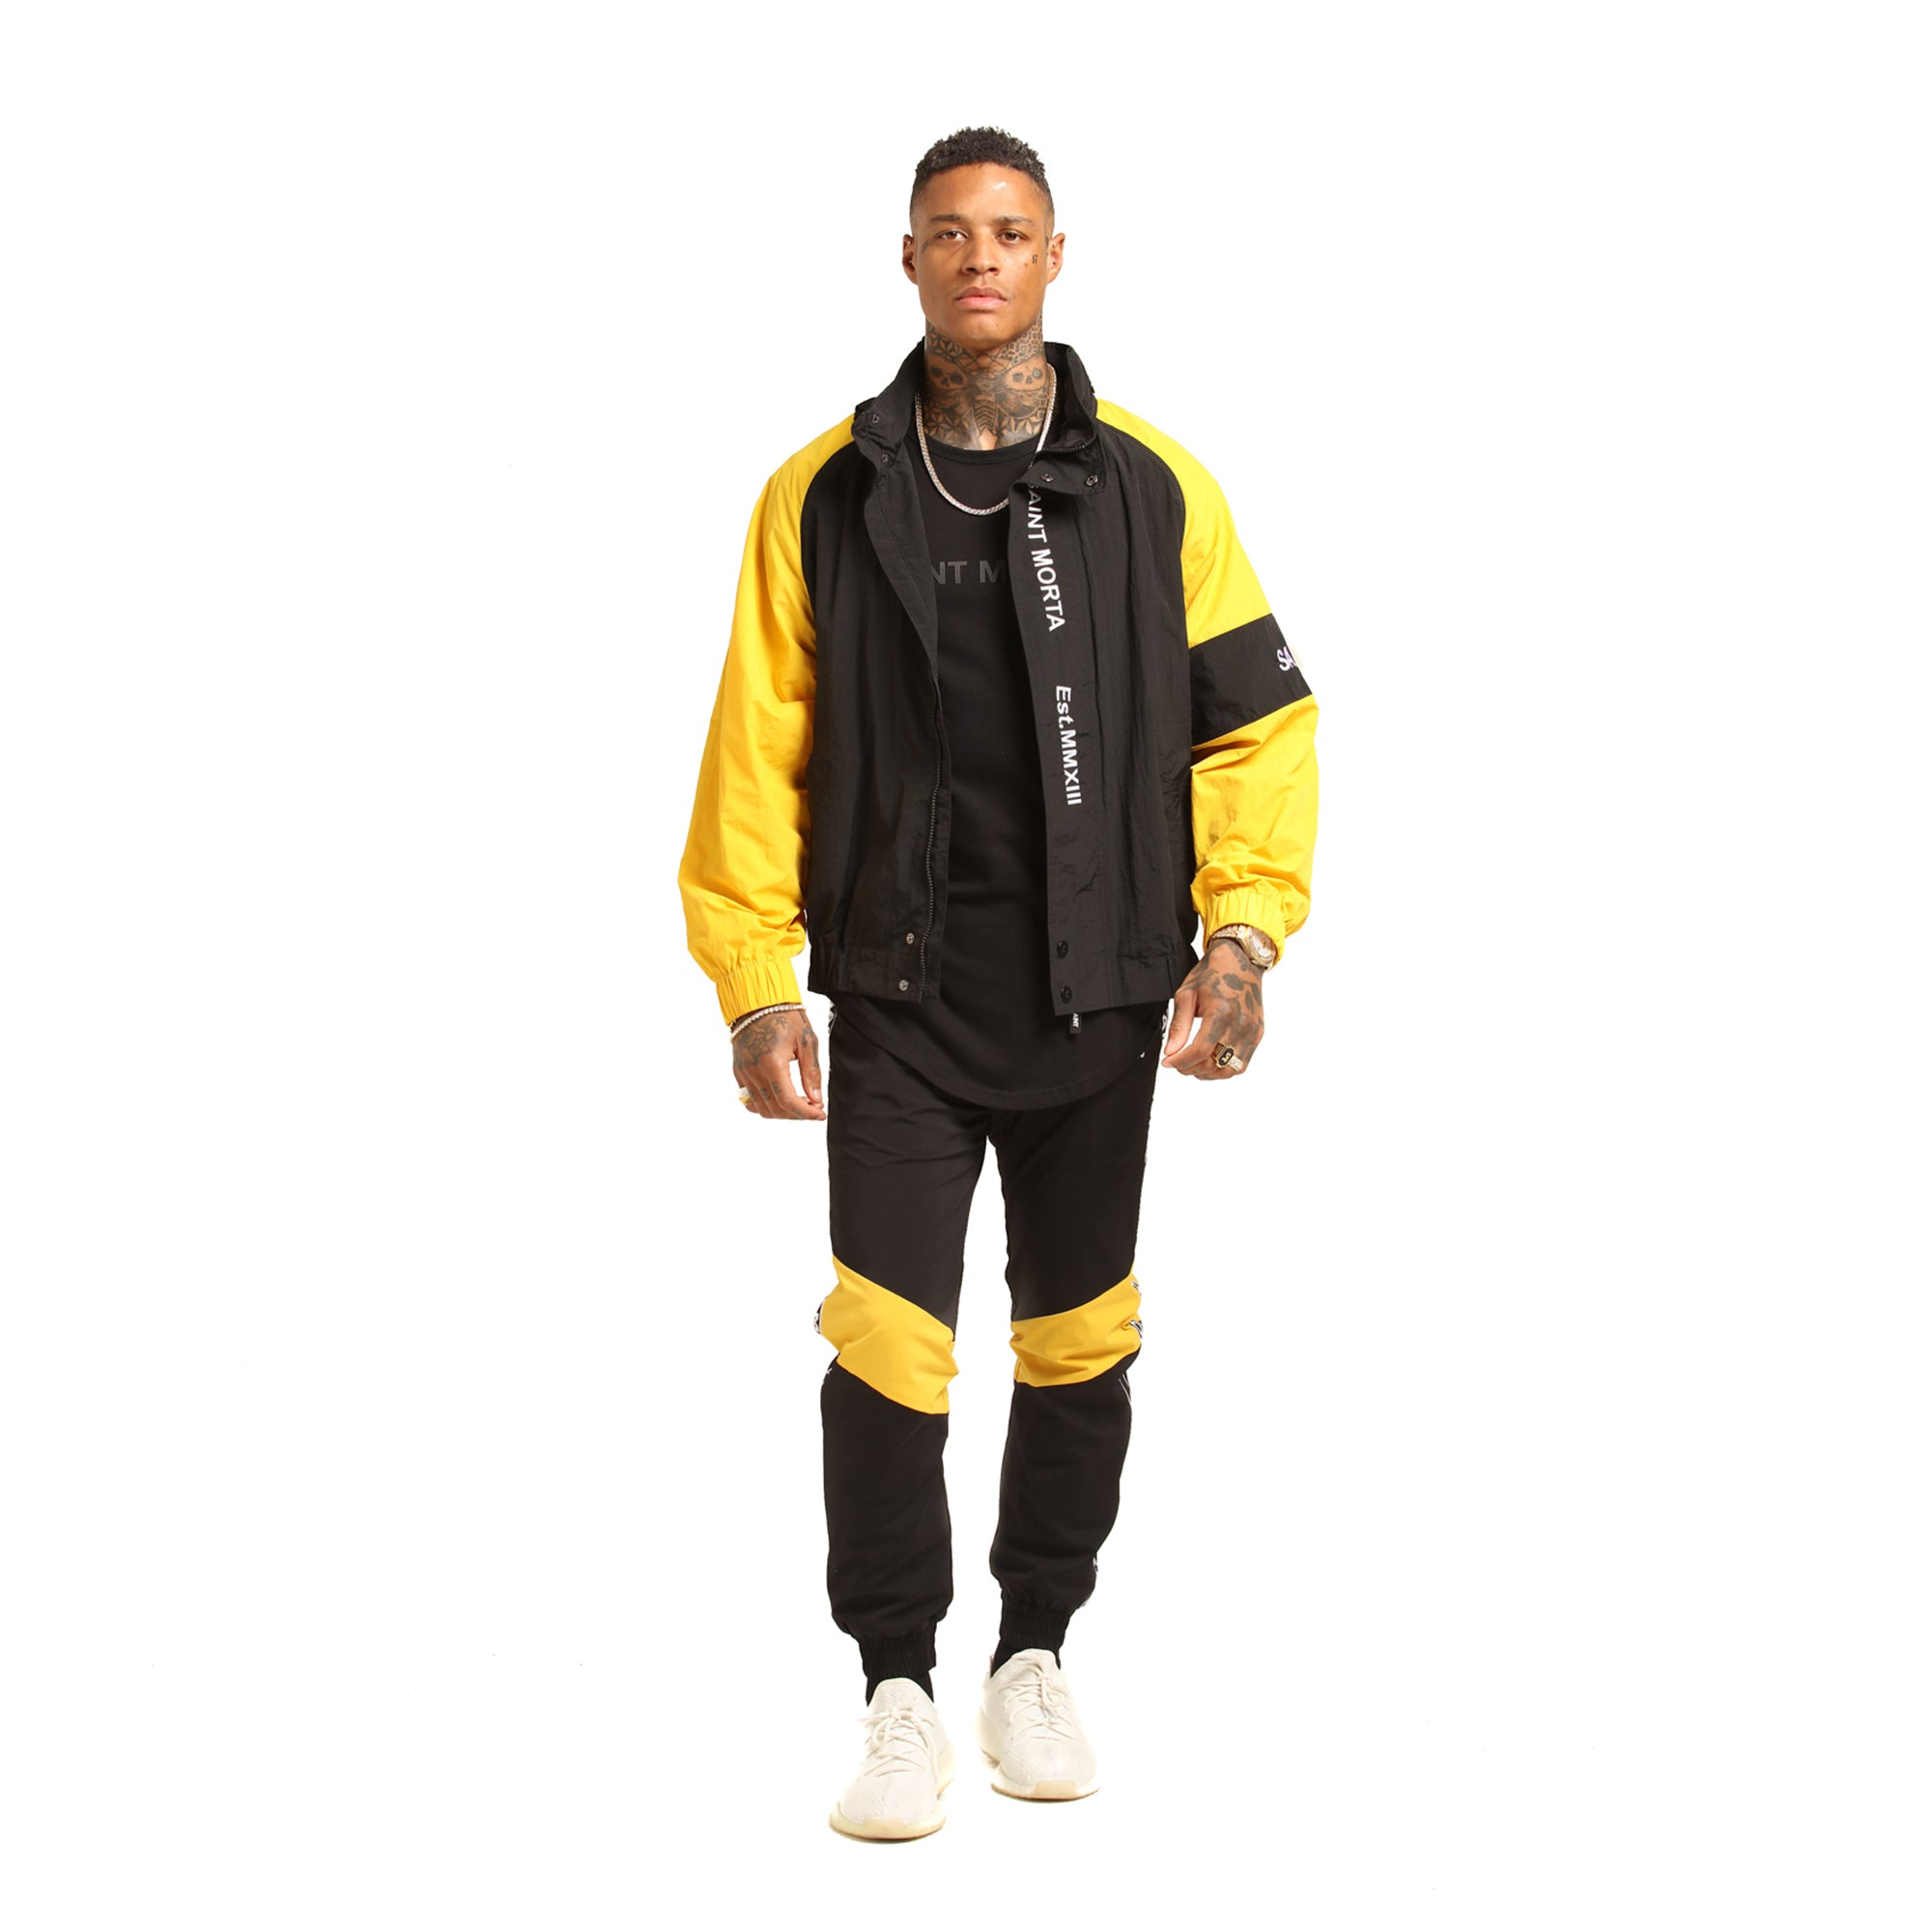 METHODS WINDBREAKER - Yellow/Black